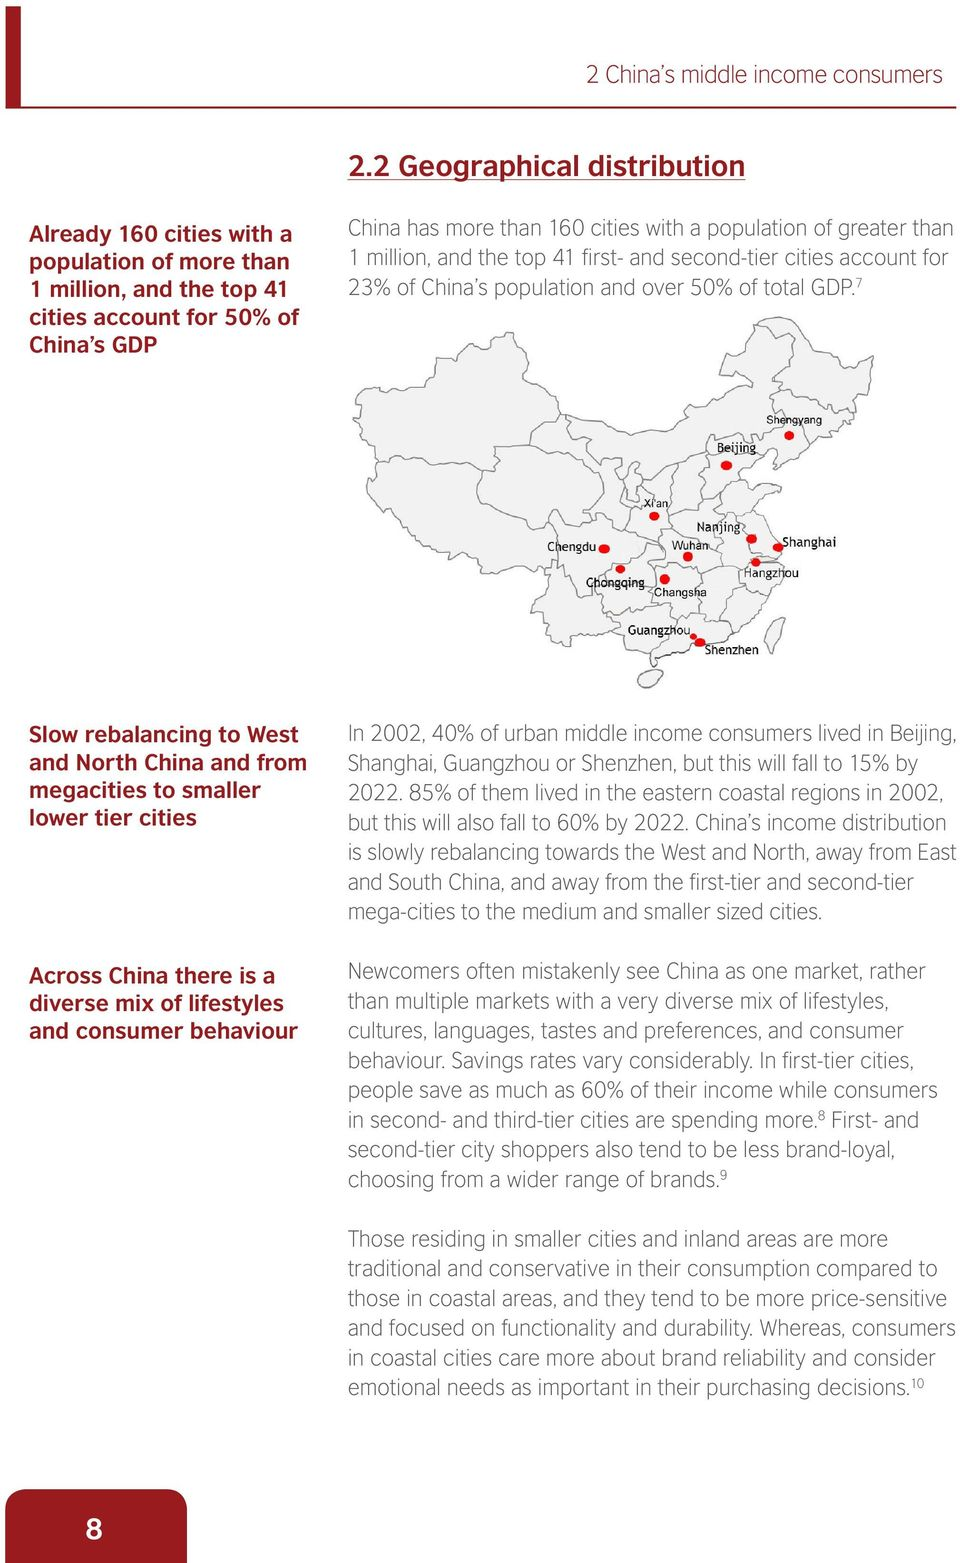 greater than 1 million, and the top 41 first- and second-tier cities account for 23% of China s population and over 50% of total GDP.